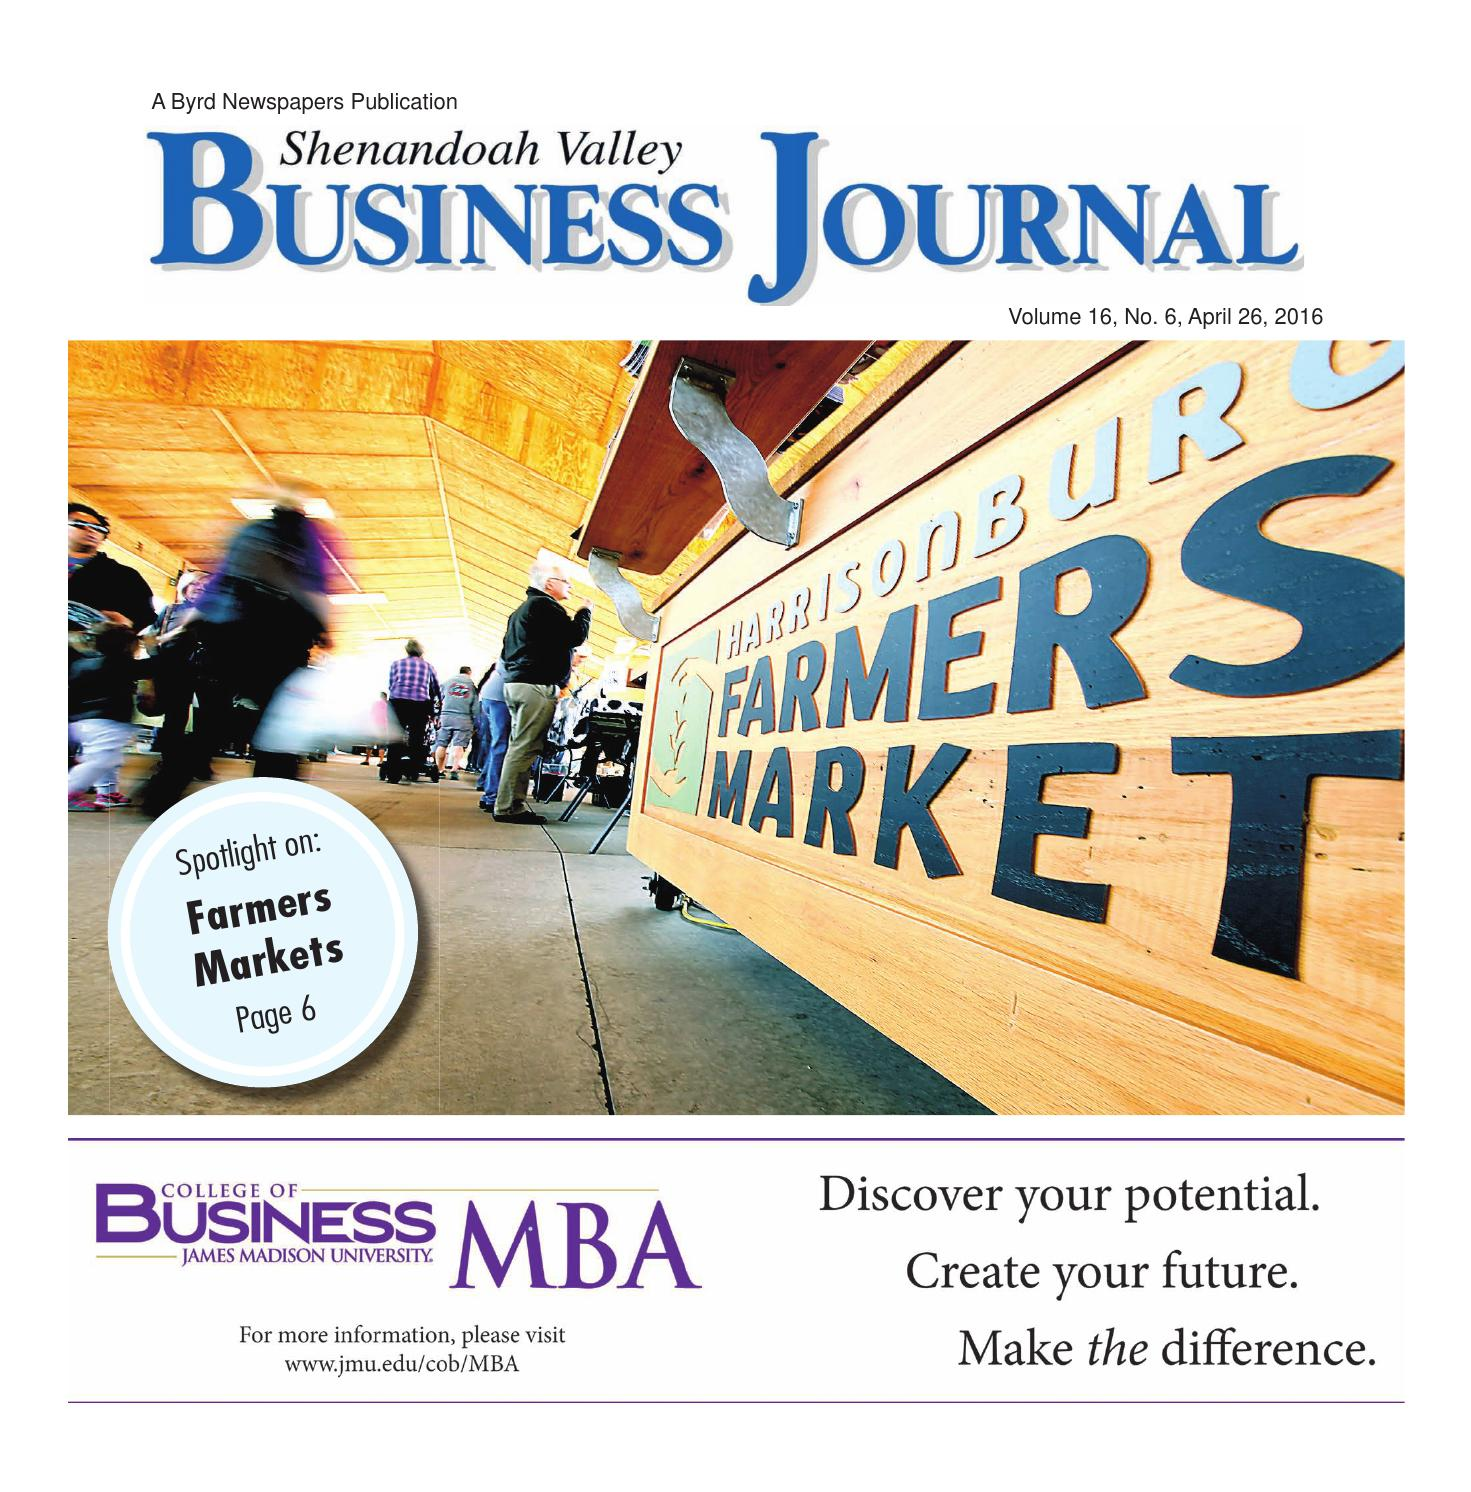 Shenandoah valley business journal by Daily News-Record